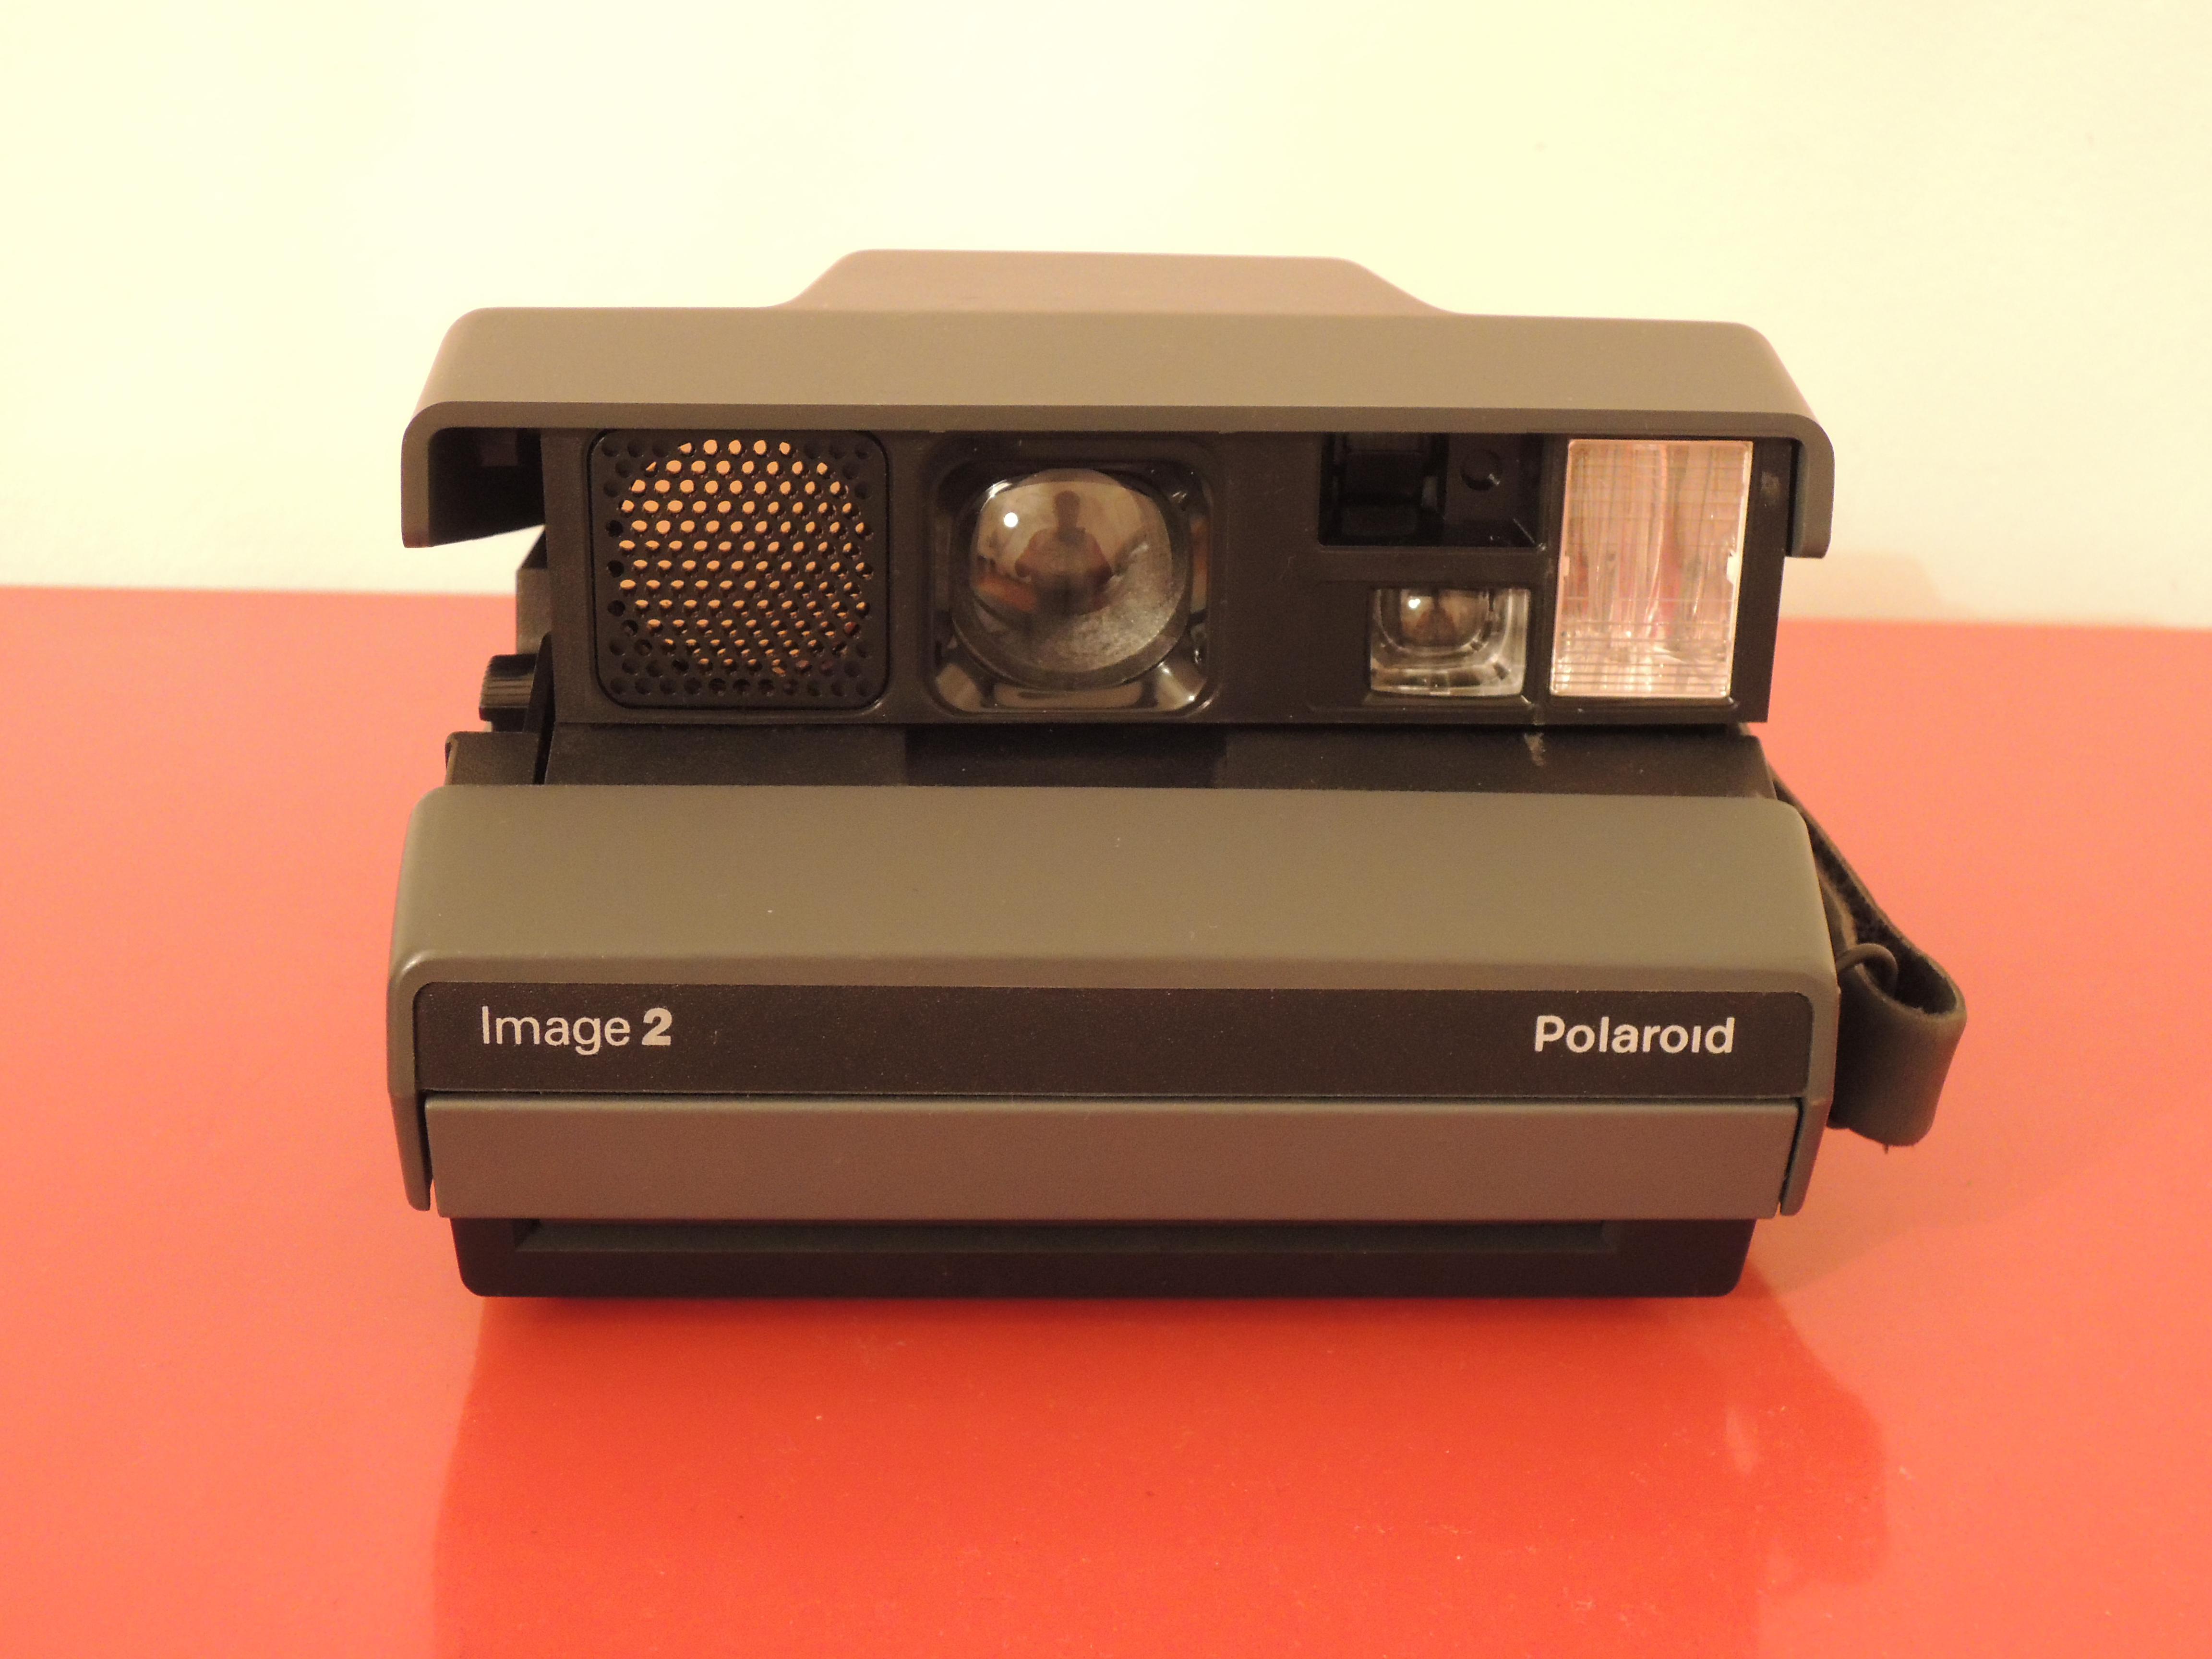 the polaroid image 2 spectra 2 all my cameras rh all my cameras com Polaroid Spectra AF Camera First Edition Spectra Polaroid